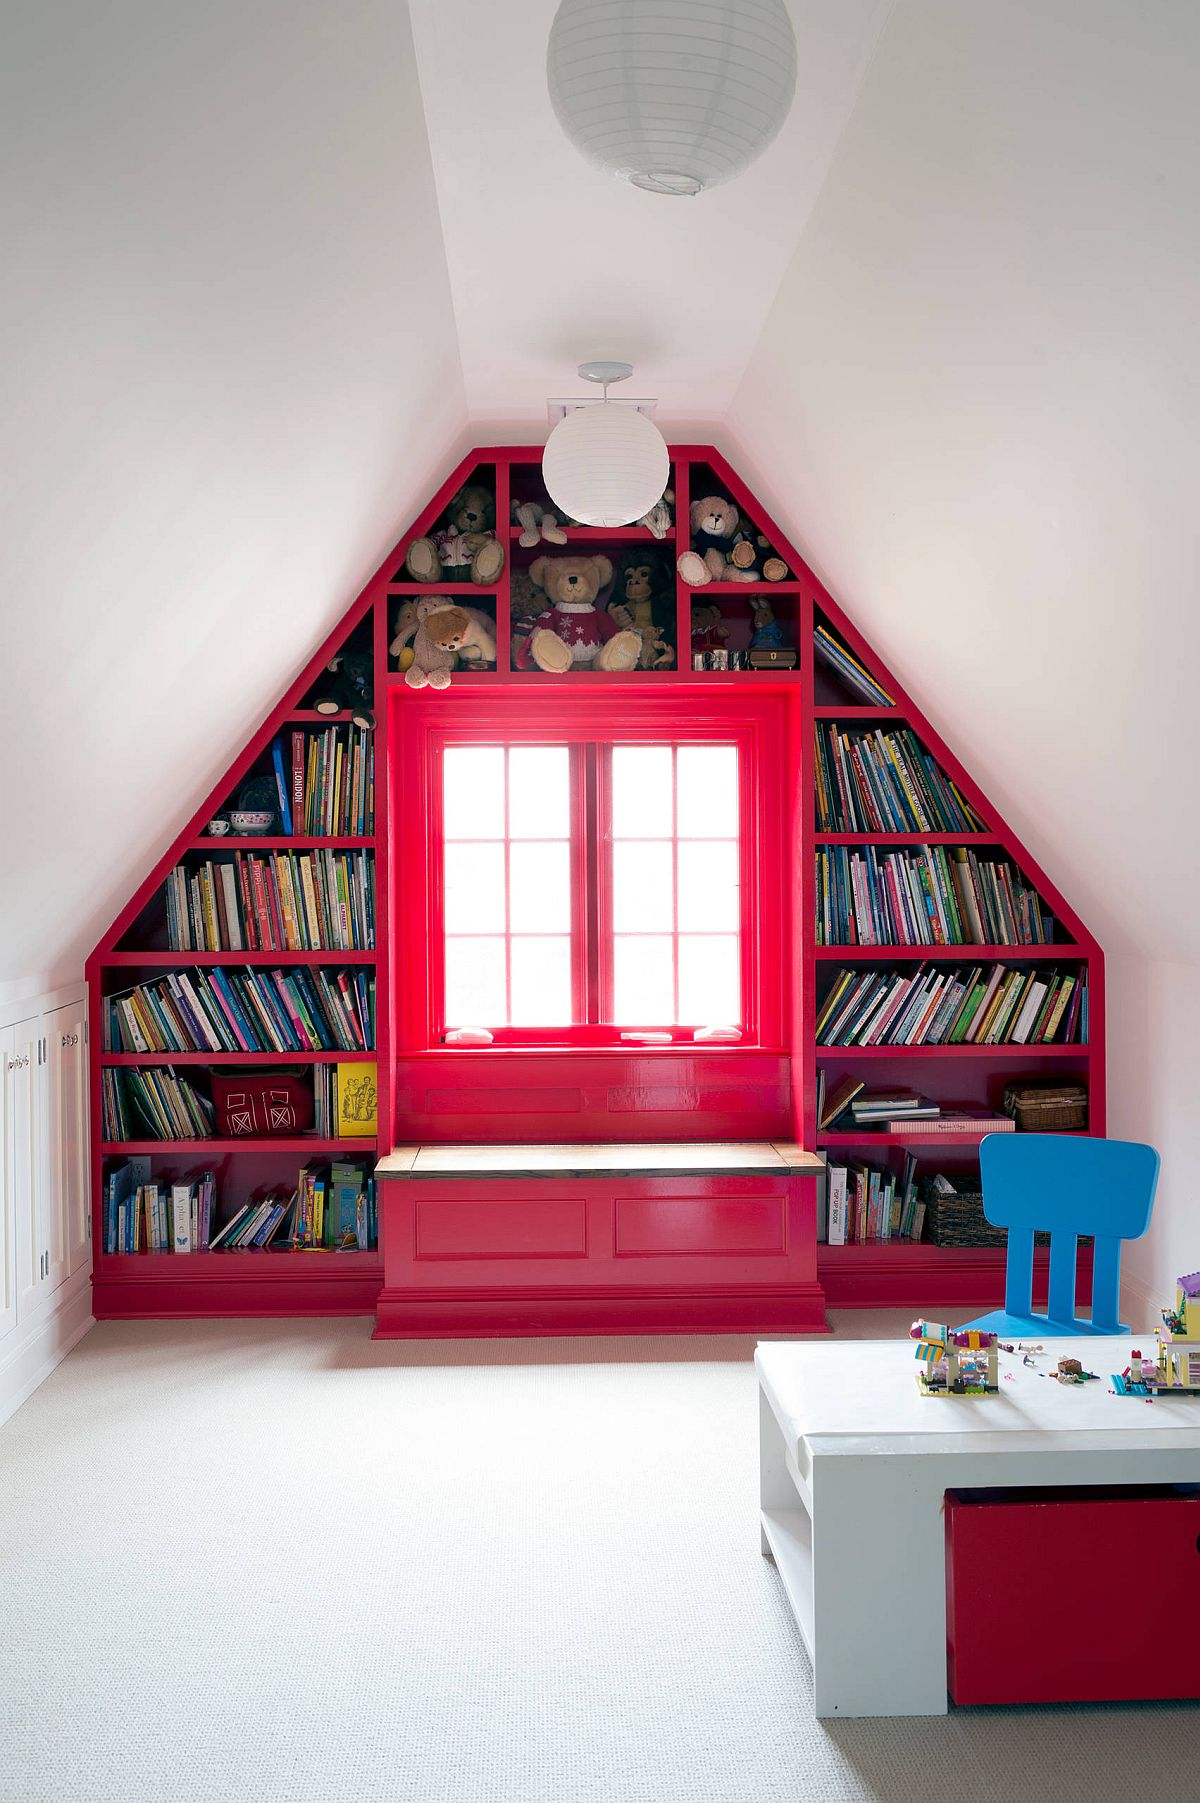 Custom bookshelf and storage area for all your kids' needs inside the lovely contemporary attic playroom